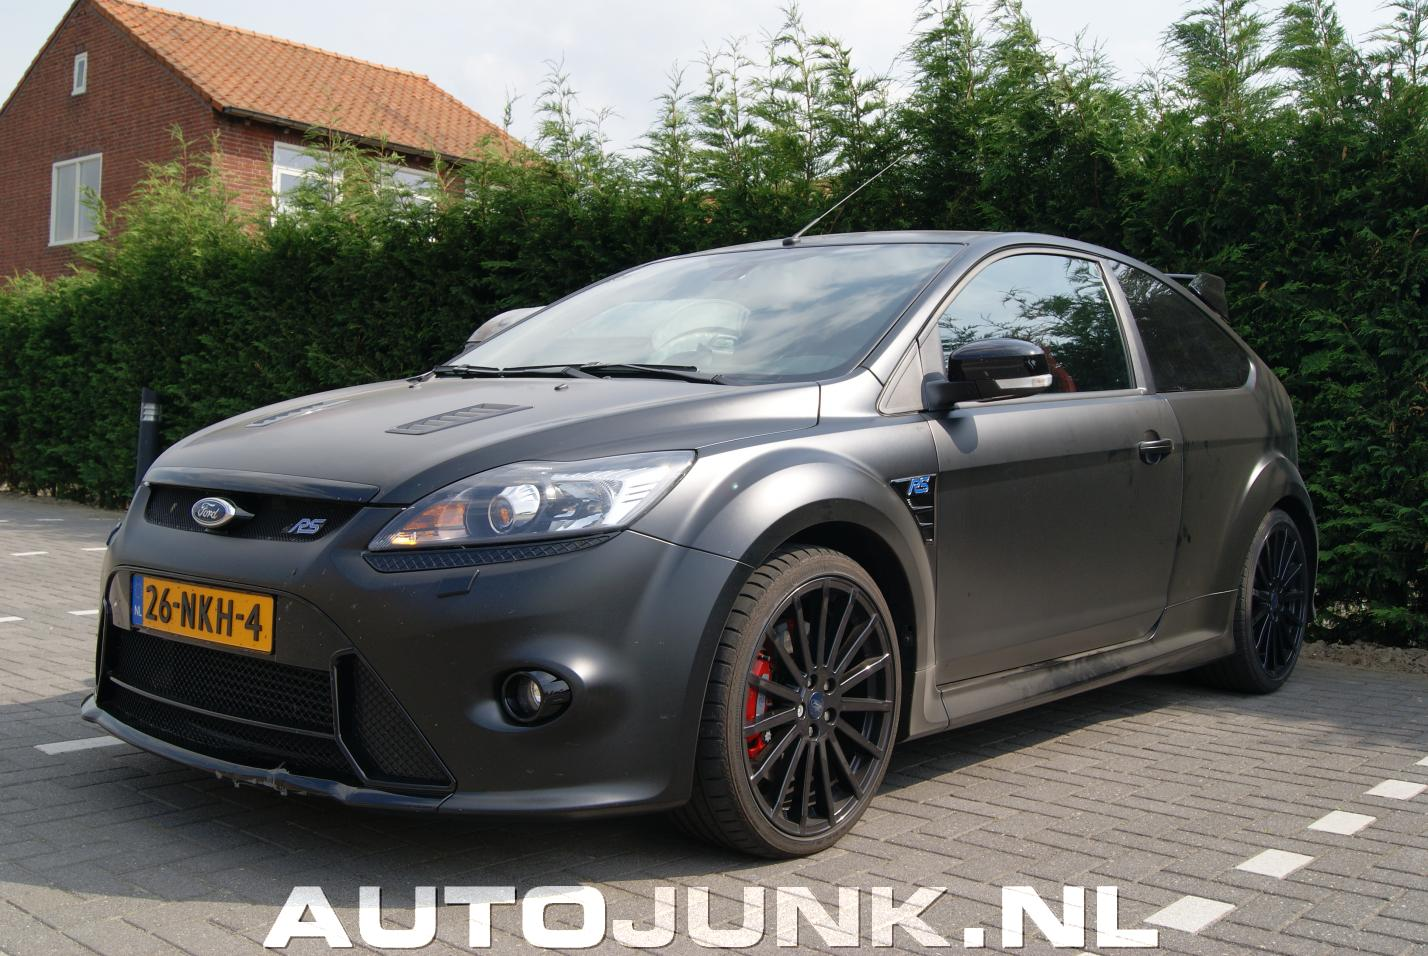 2014 ford focus rs picture 2017 2018 best cars reviews. Black Bedroom Furniture Sets. Home Design Ideas